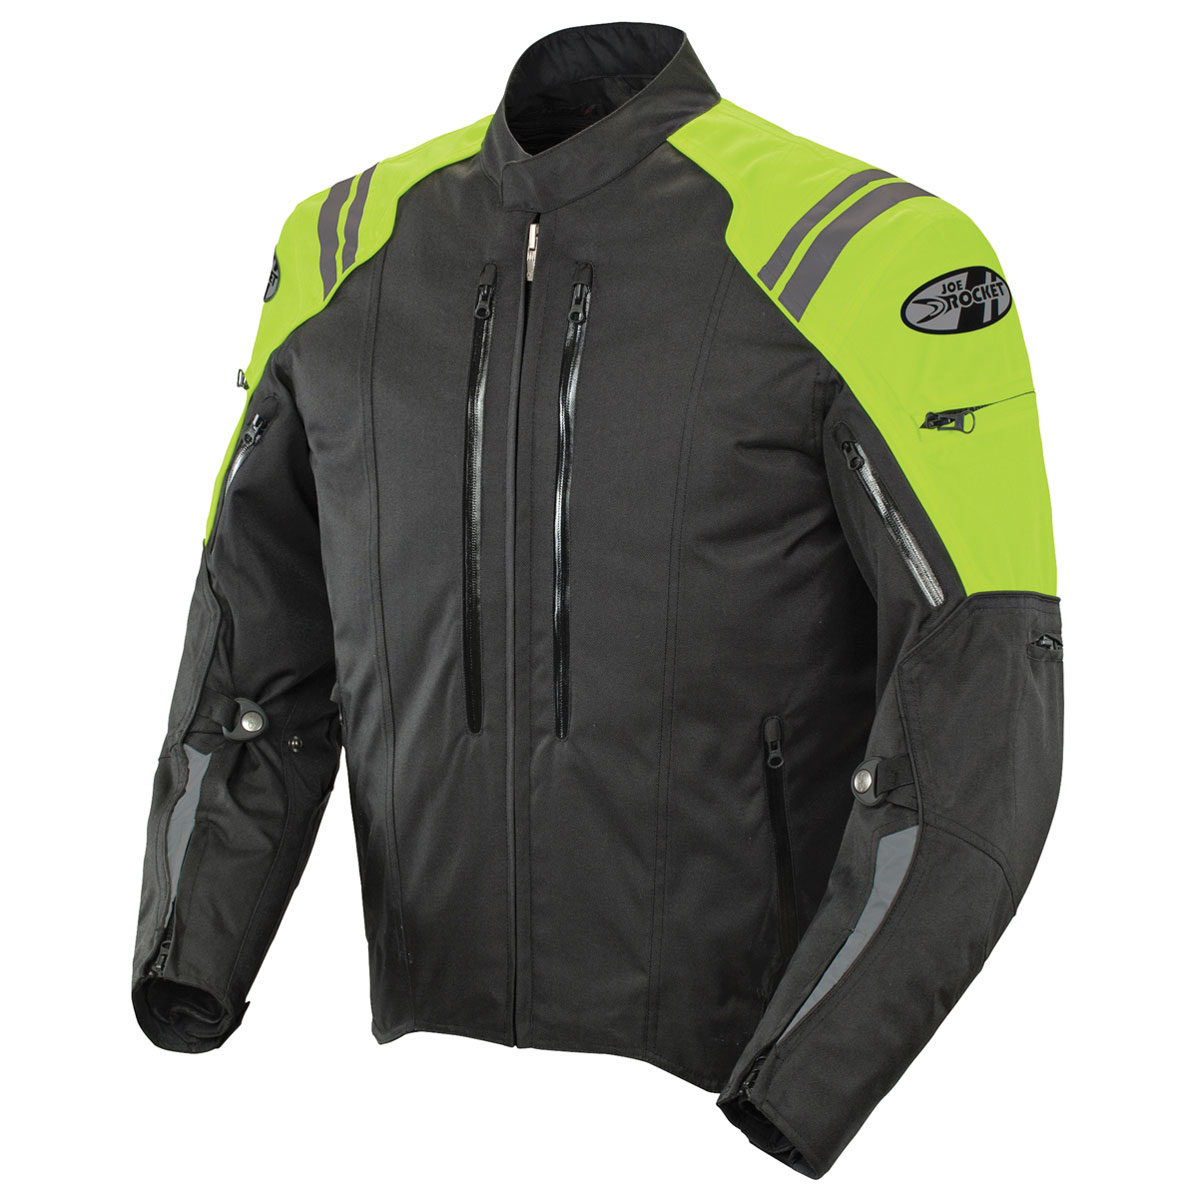 Joe Rocket Men's Atomic 4.0 Waterproof Neon/Black Jacket